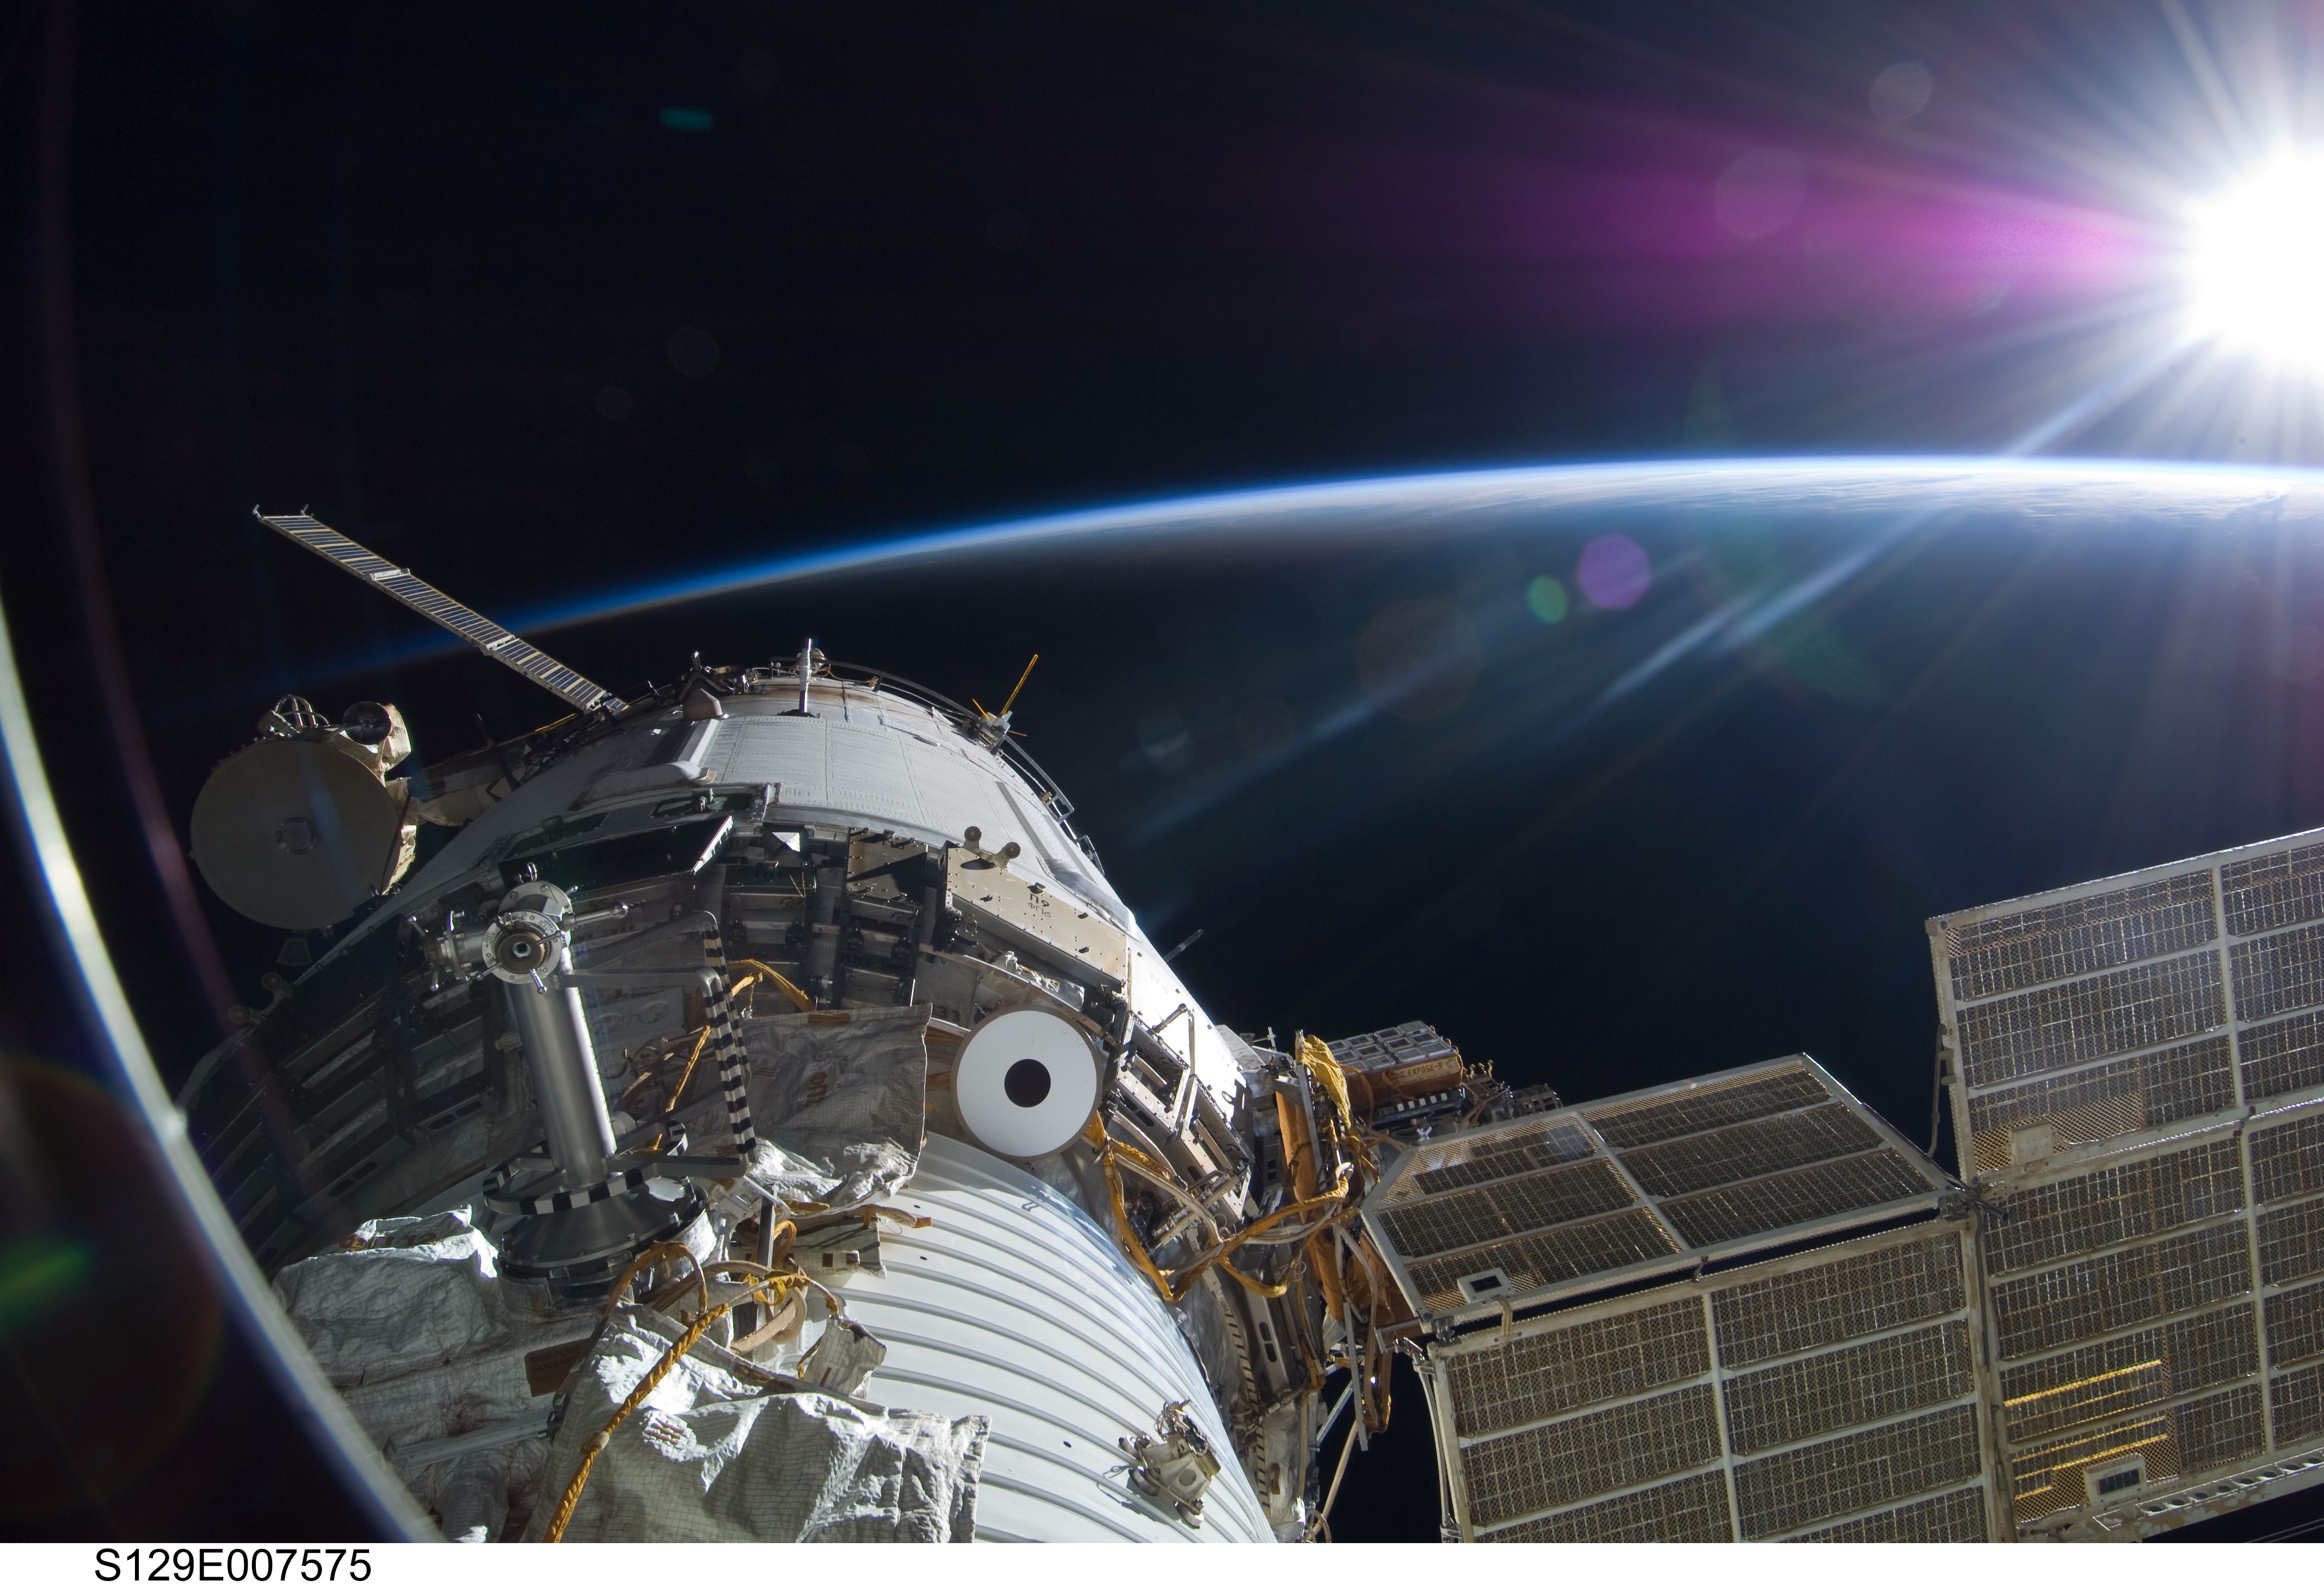 3D-Textured Solar Cells Will Be Tested in Space